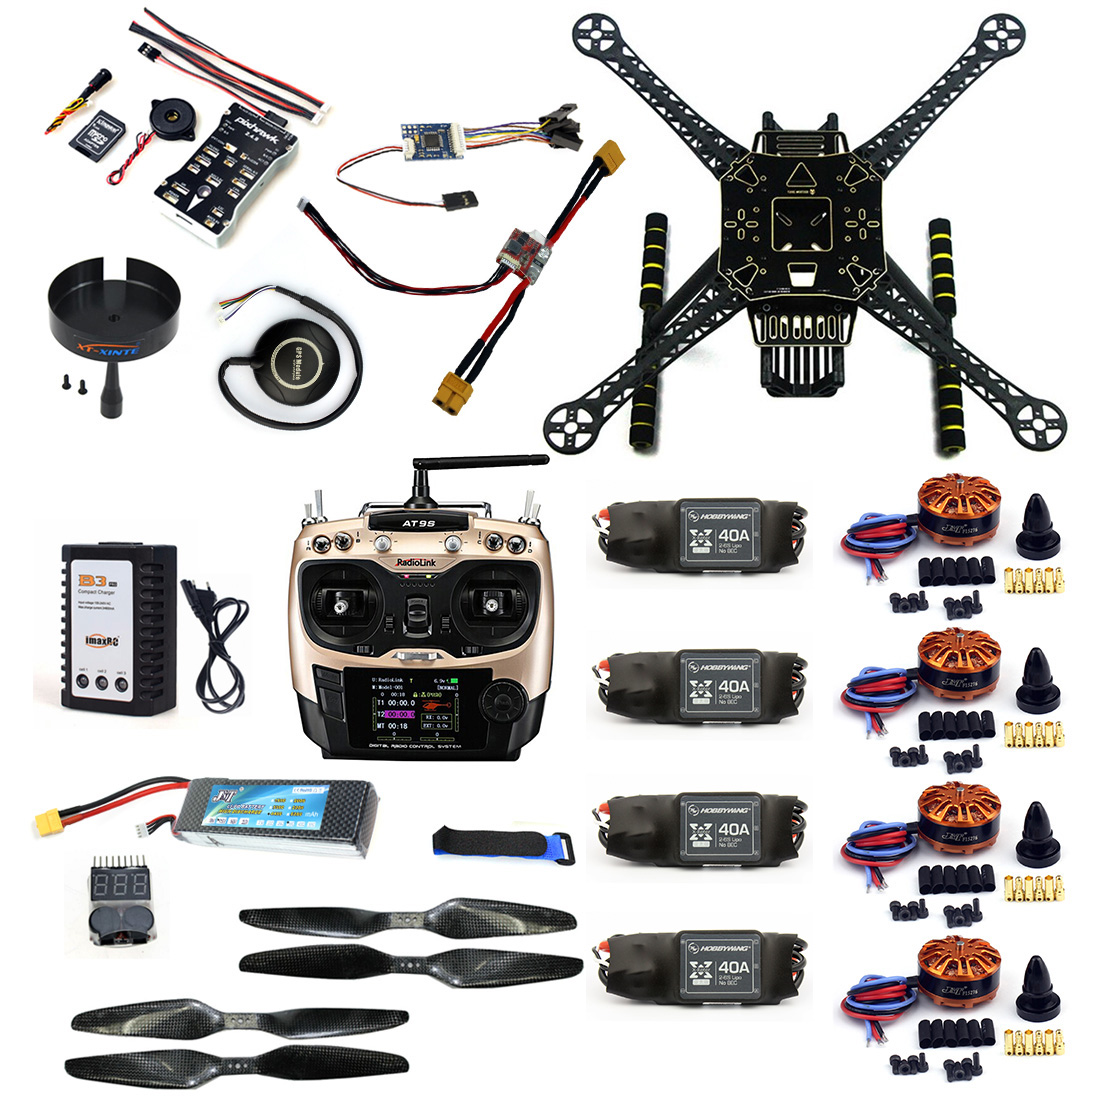 DIY Full Kit RC Drone S600 Frame PIX 2.4.8 Flight Control AT9S TX 40A ESC 700KV Motor with Battery Charger XT60 Plug F19457-C zd850 full carbon fiber 850mm hexa rotor frame pix pixhawk 2 4 8 flight comtrol 5010 360kv motor 40a brushless opto esc set